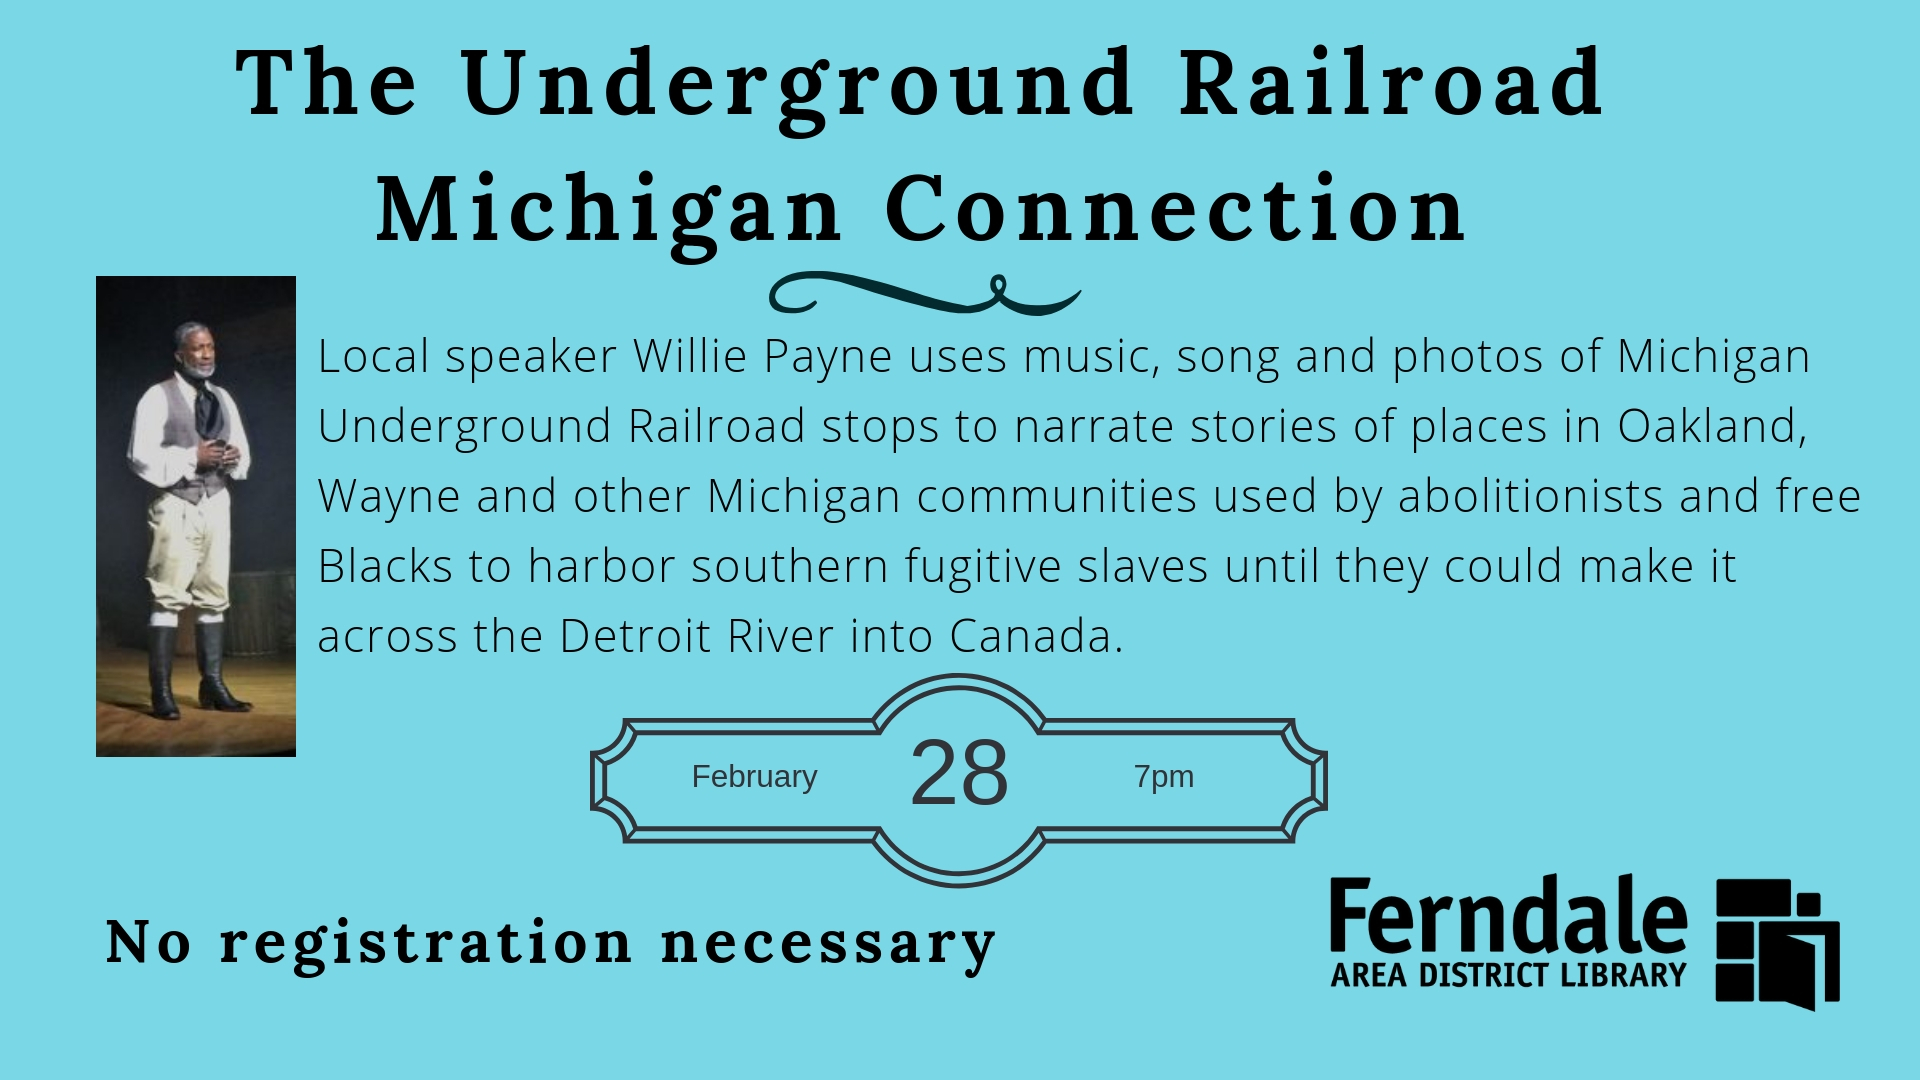 The Underground Railroad: The Michigan Connection